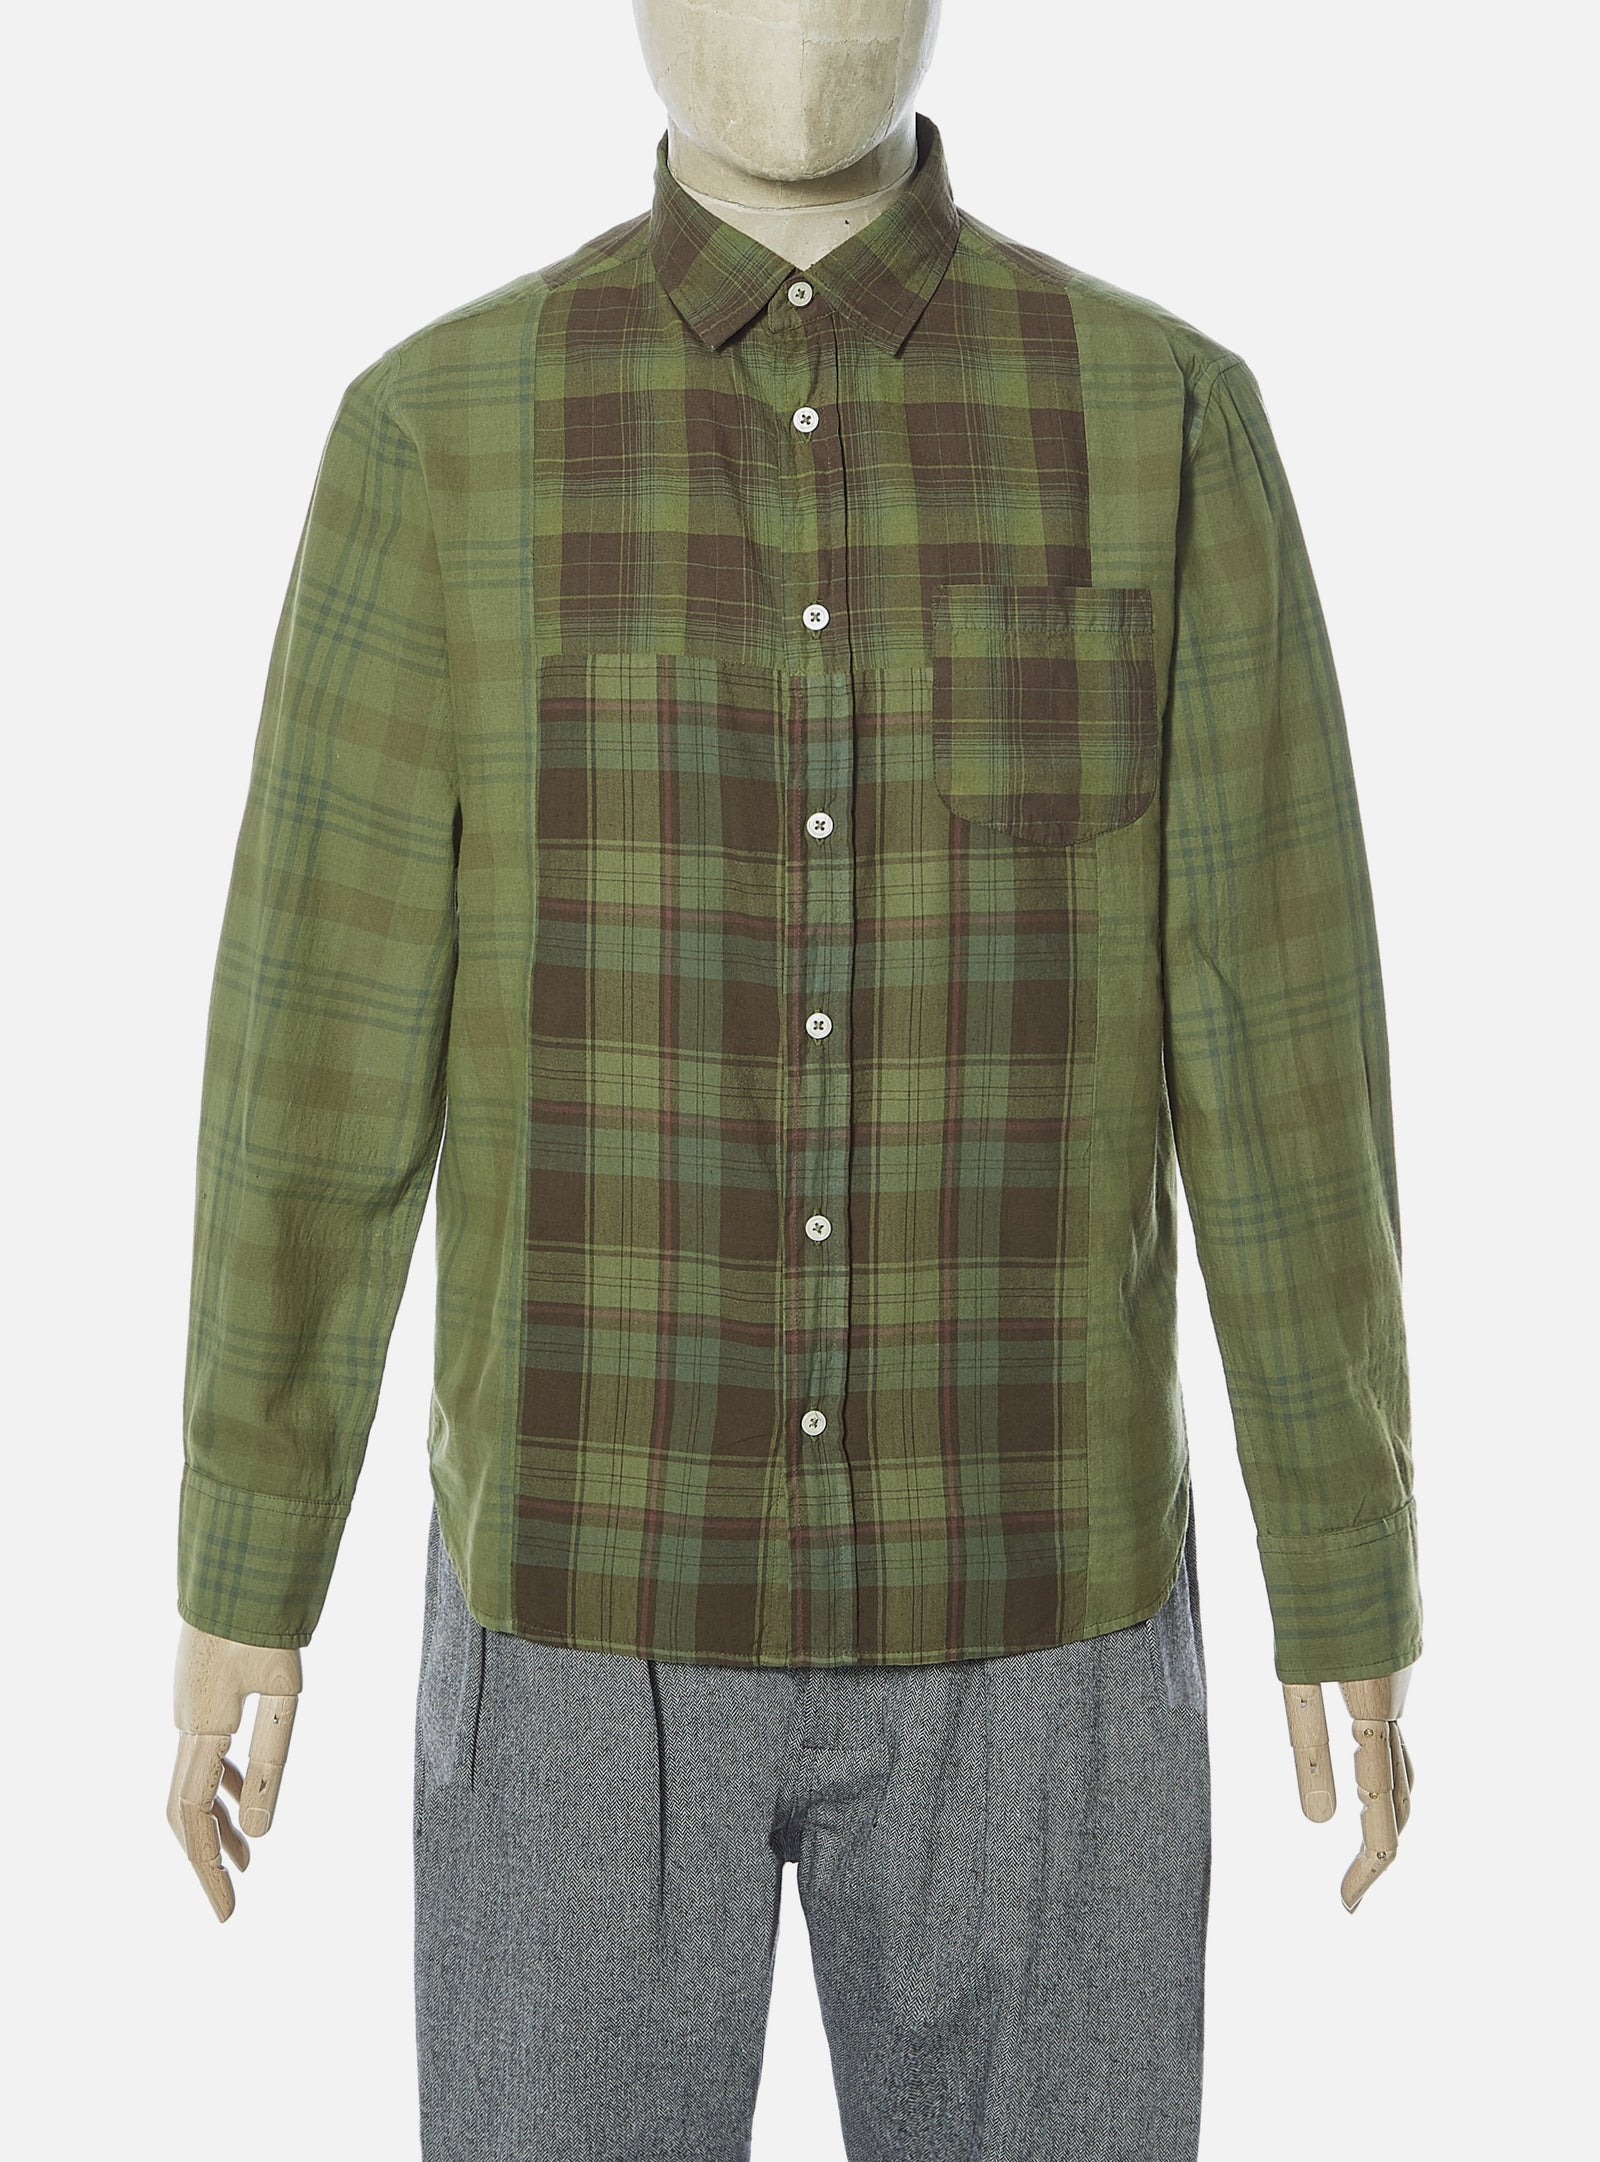 Universal Works Block Shirt in Olive Cotton Checks